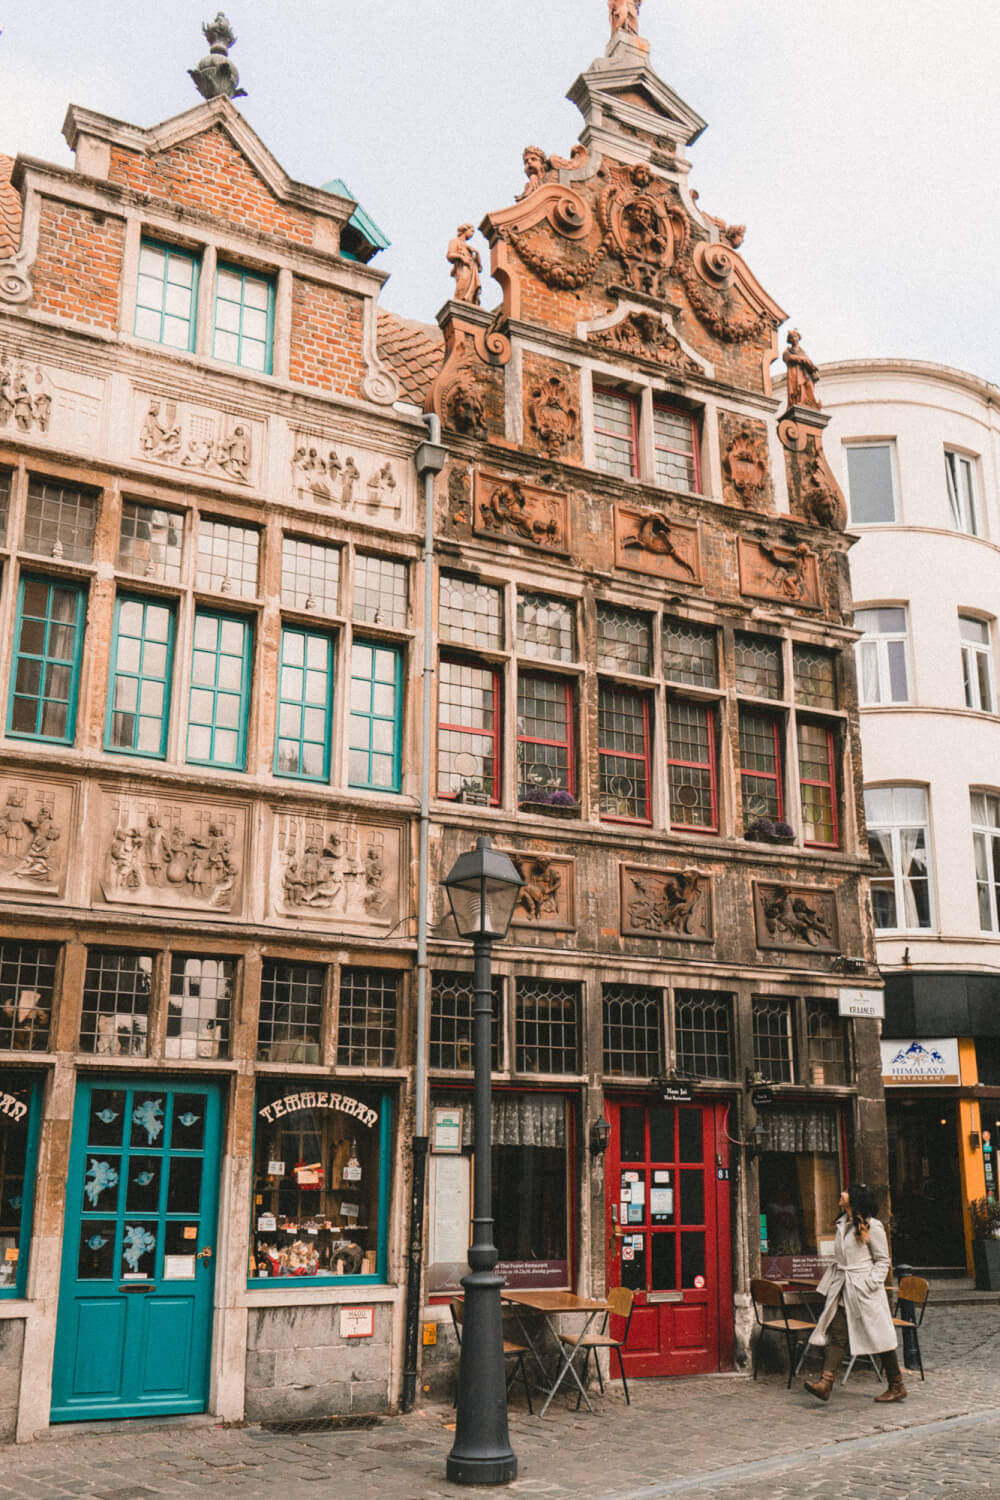 Travel blogger walking in front of beautiful storefronts in Ghent